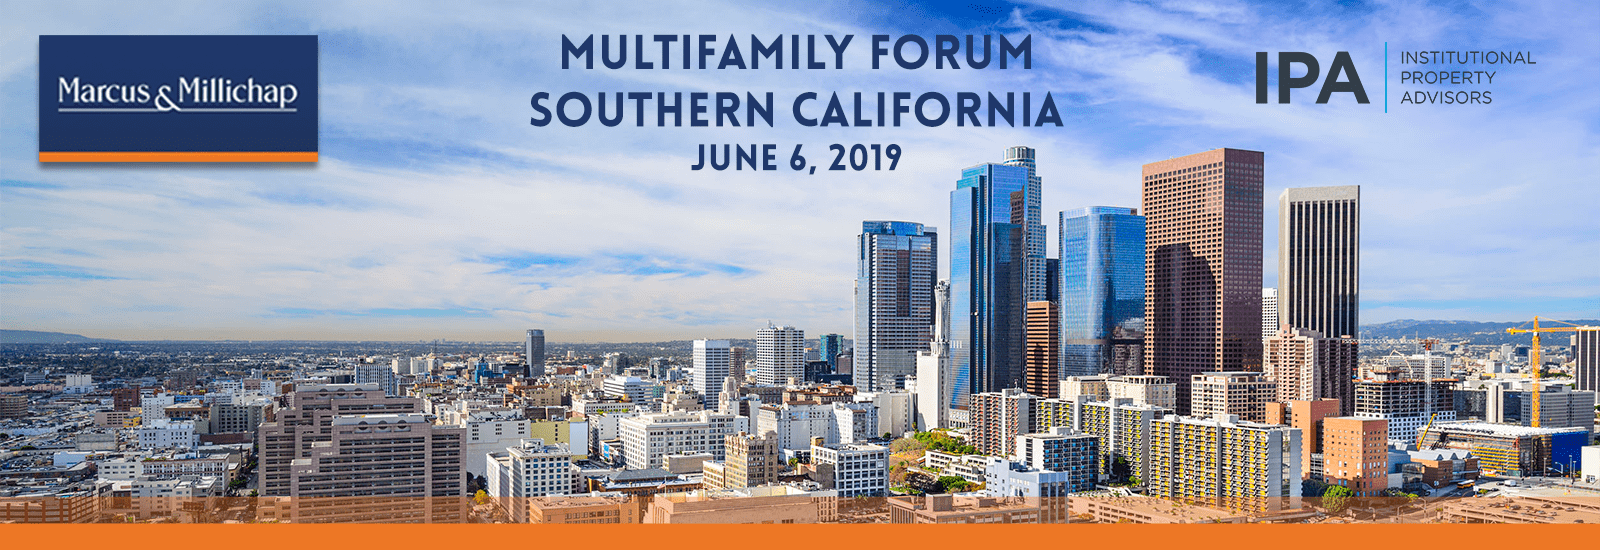 Southern California | Multifamily Forum